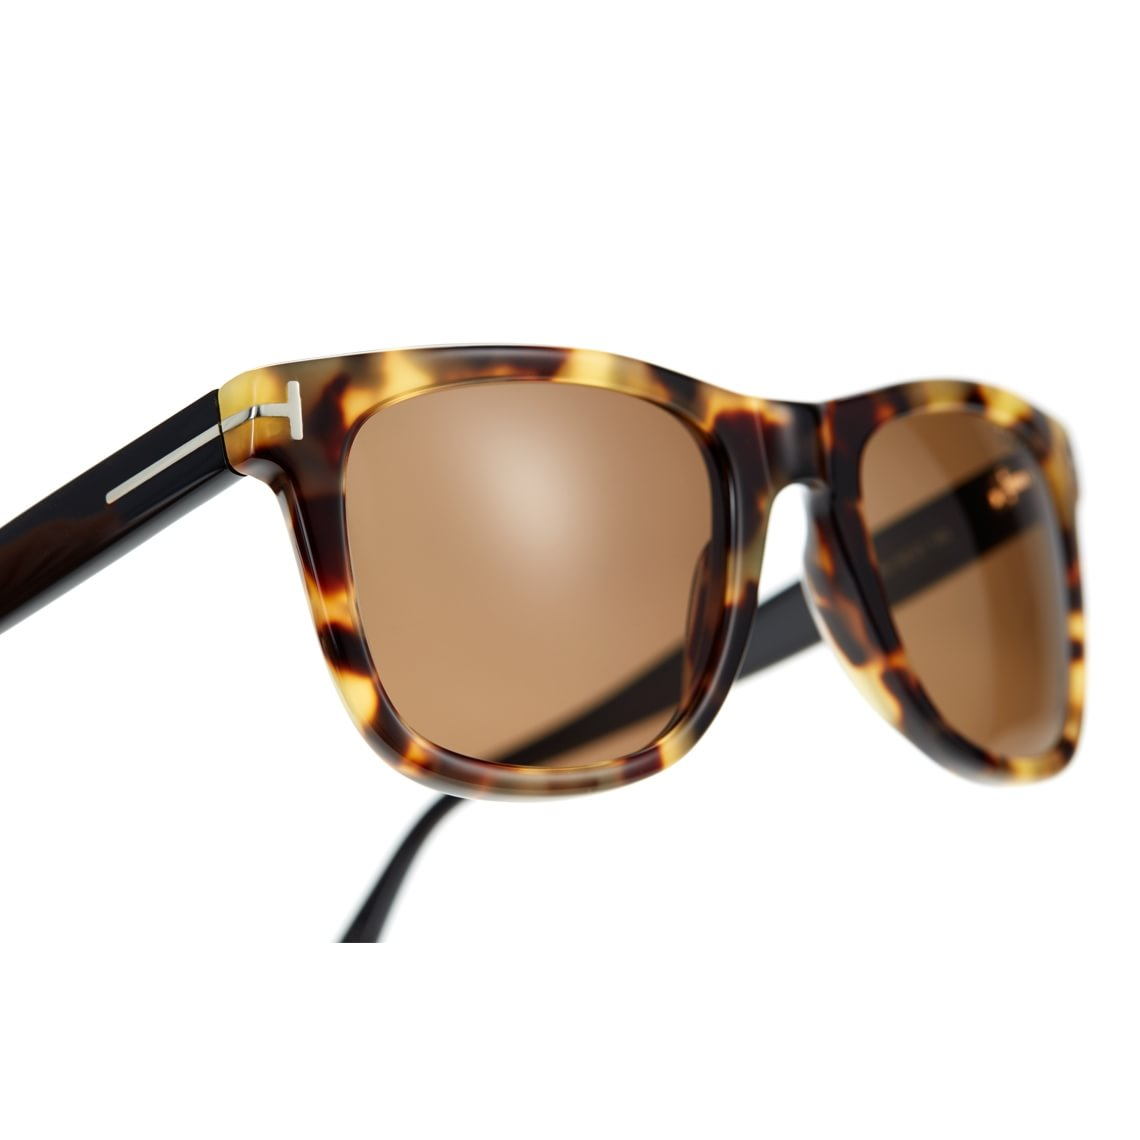 Tom Ford TF336 55J 52